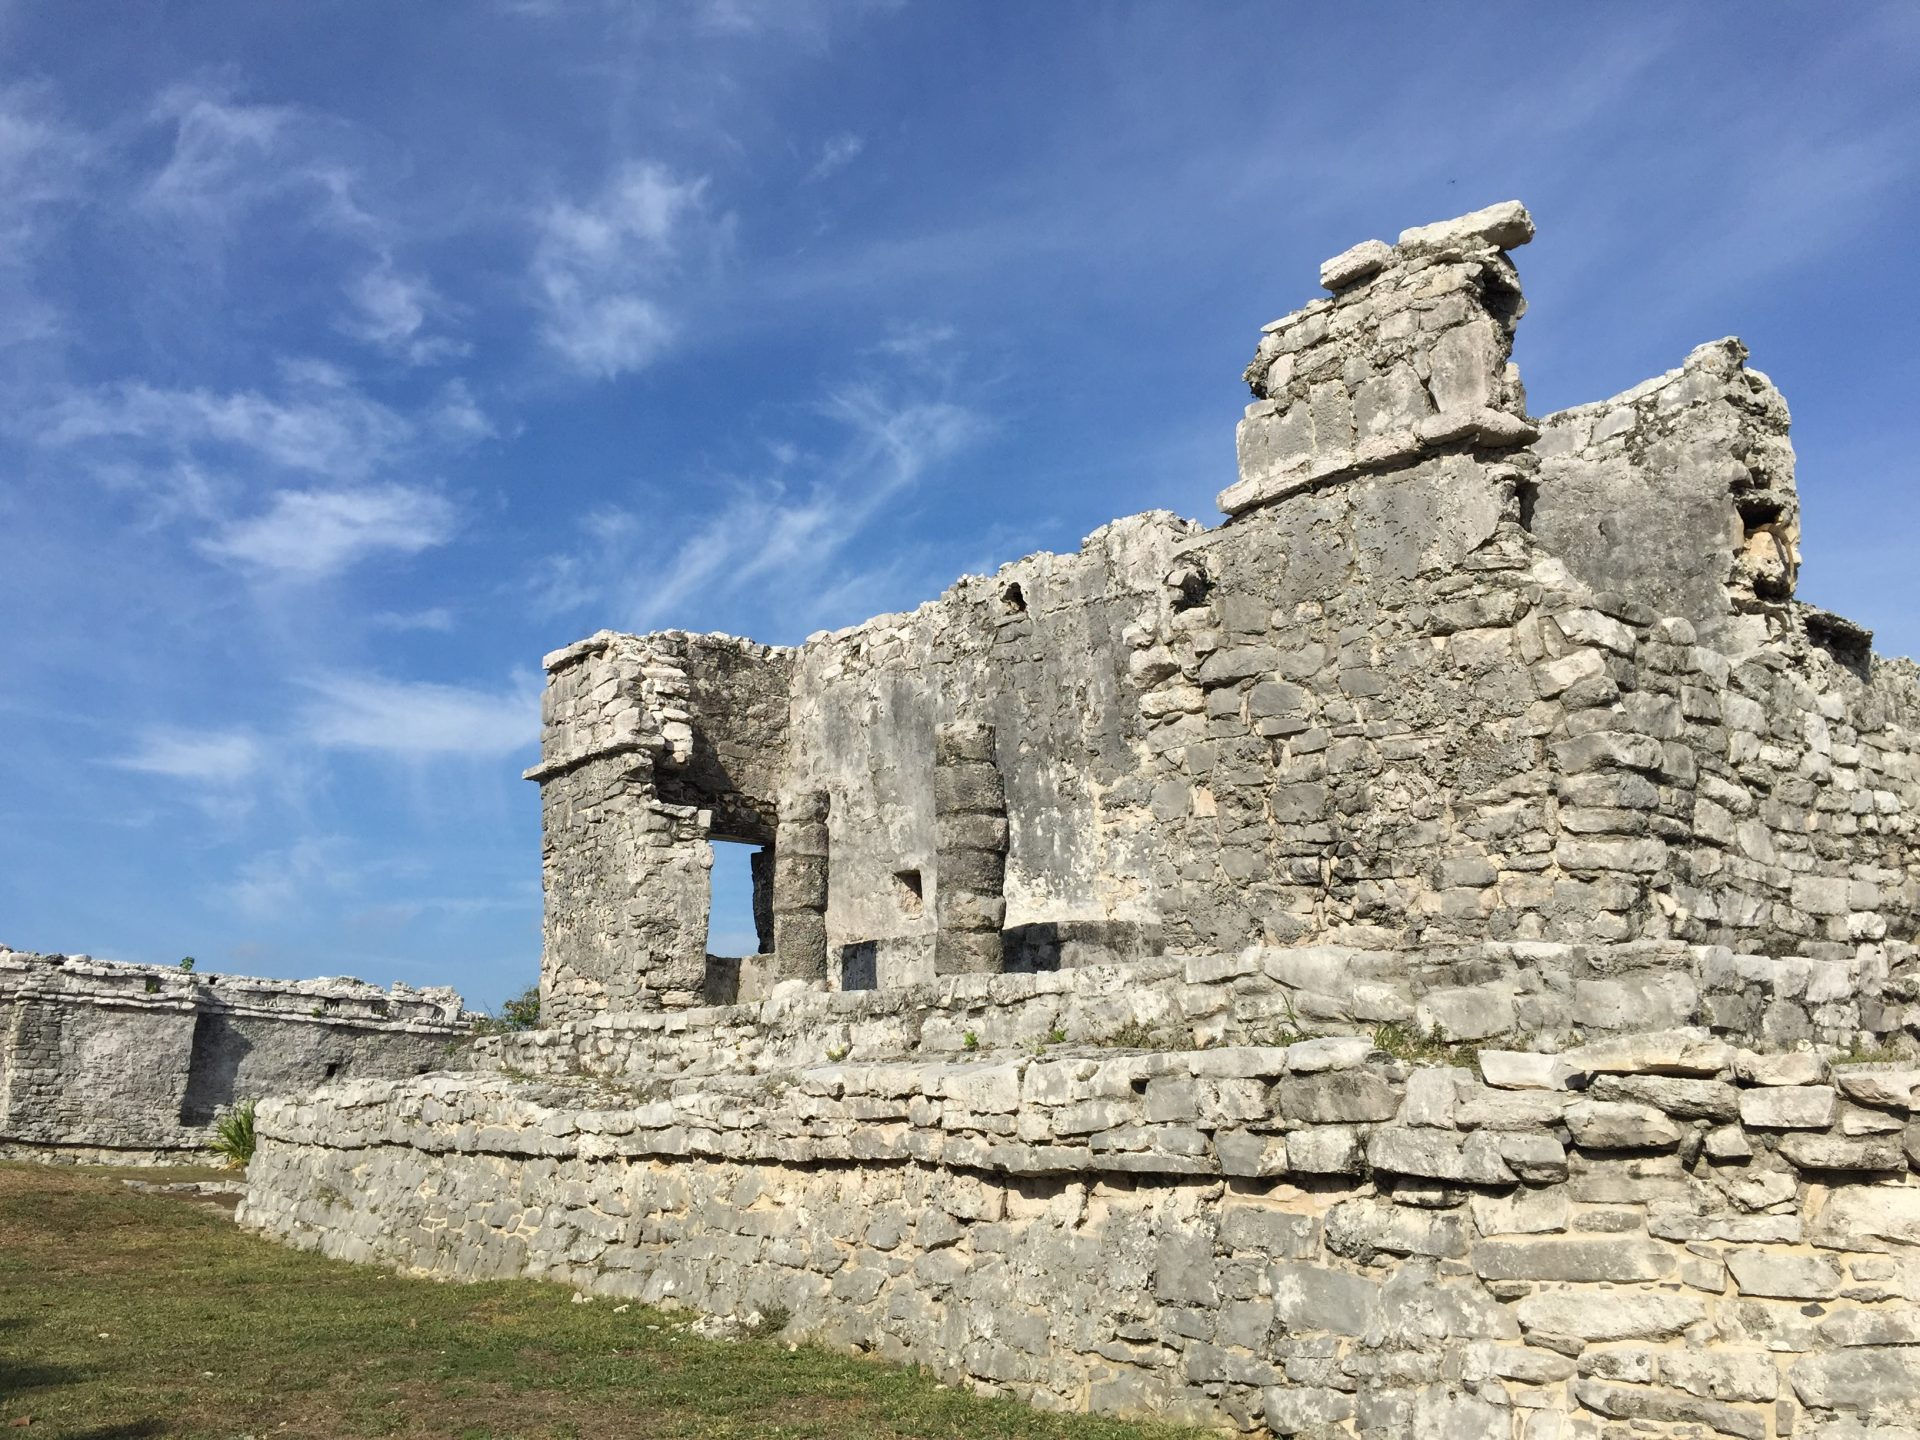 ruins tulum mexico - Travel Contests: August 26th, 2020 - Tulum, Antigua, the Bahamas, & more